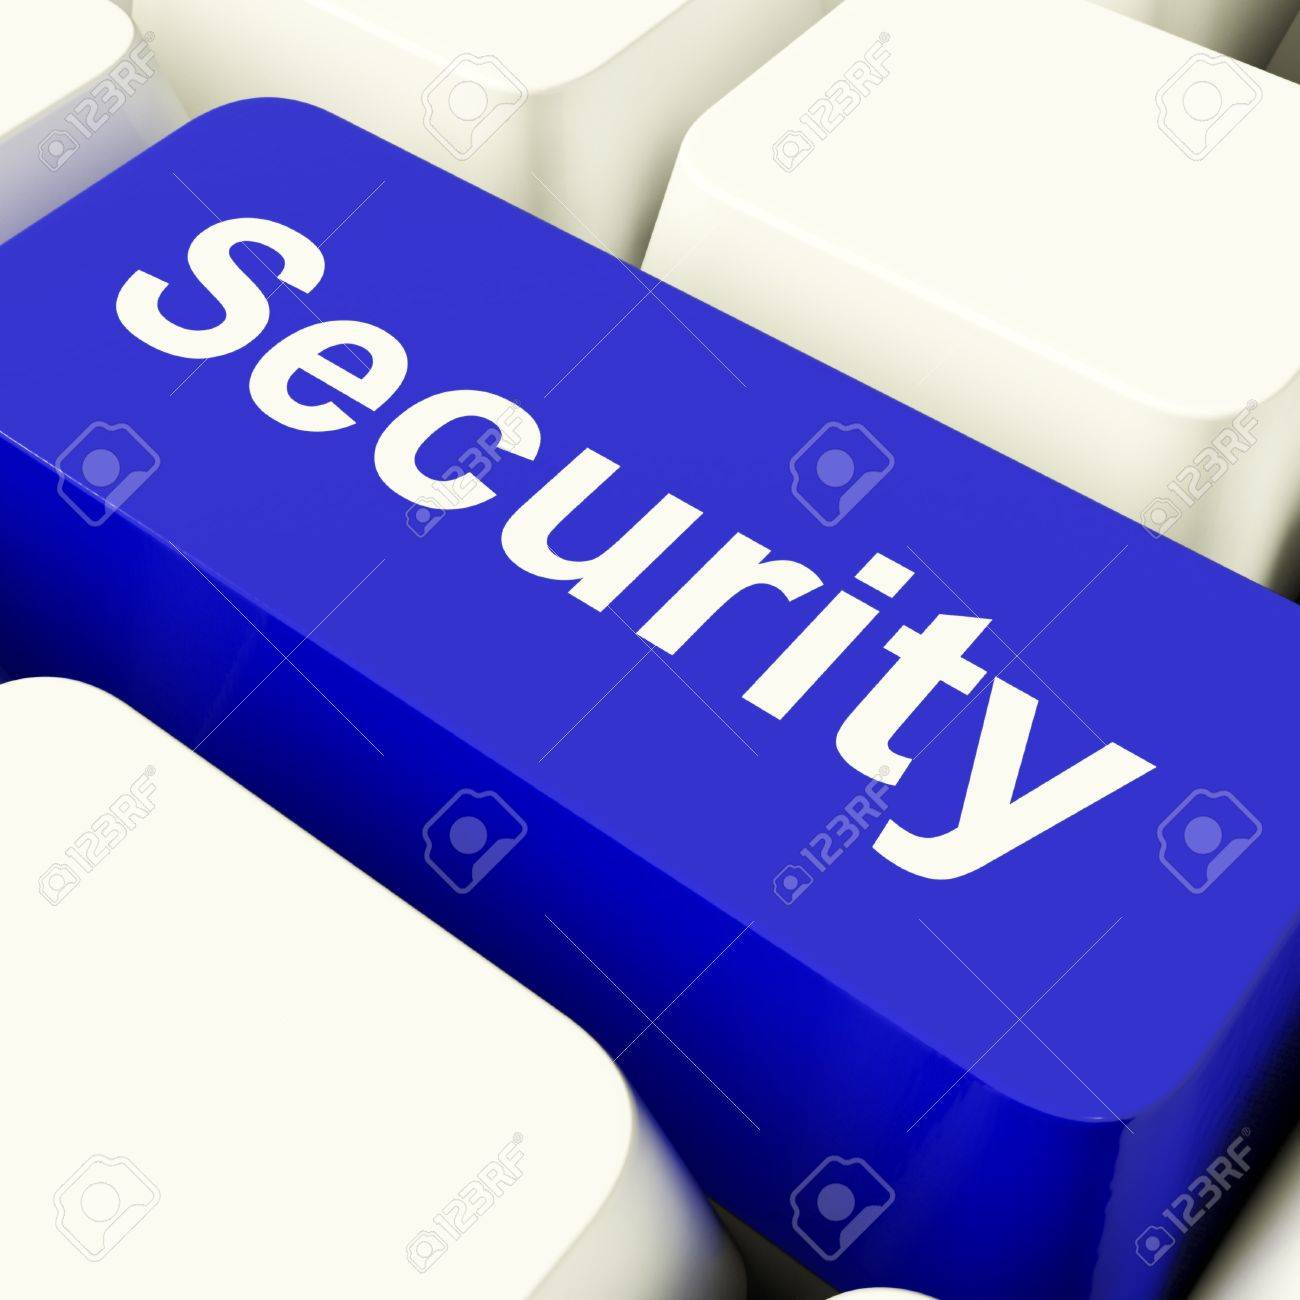 Security Computer Key In Blue Showing Privacy And Online Safety Stock Photo - 11947646